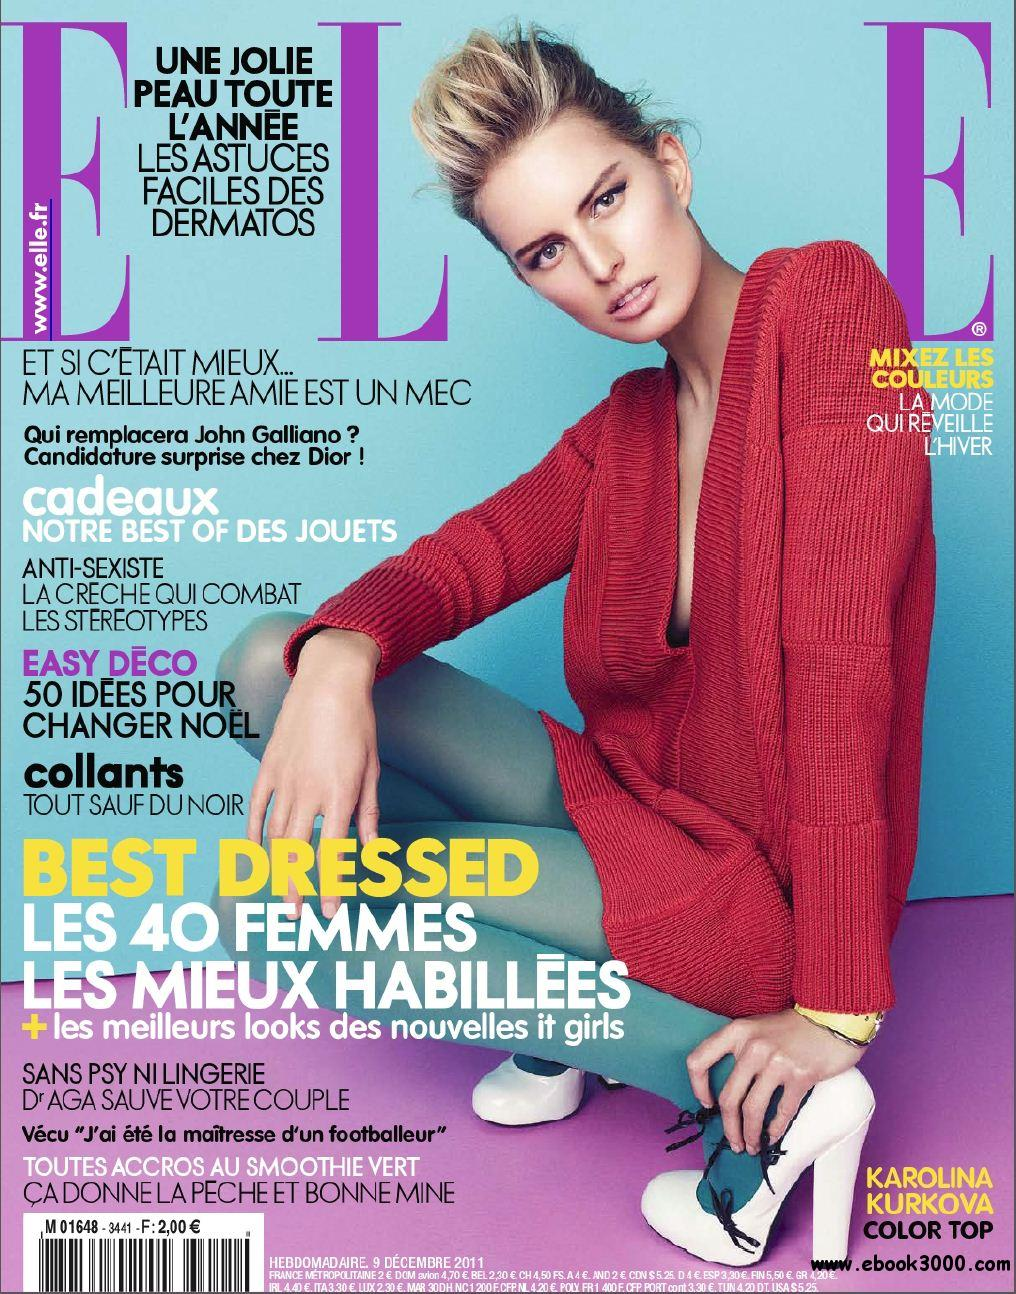 Elle N 3441 & Supplement Elle Paris du 9 au 15 Decembre 2011 free download